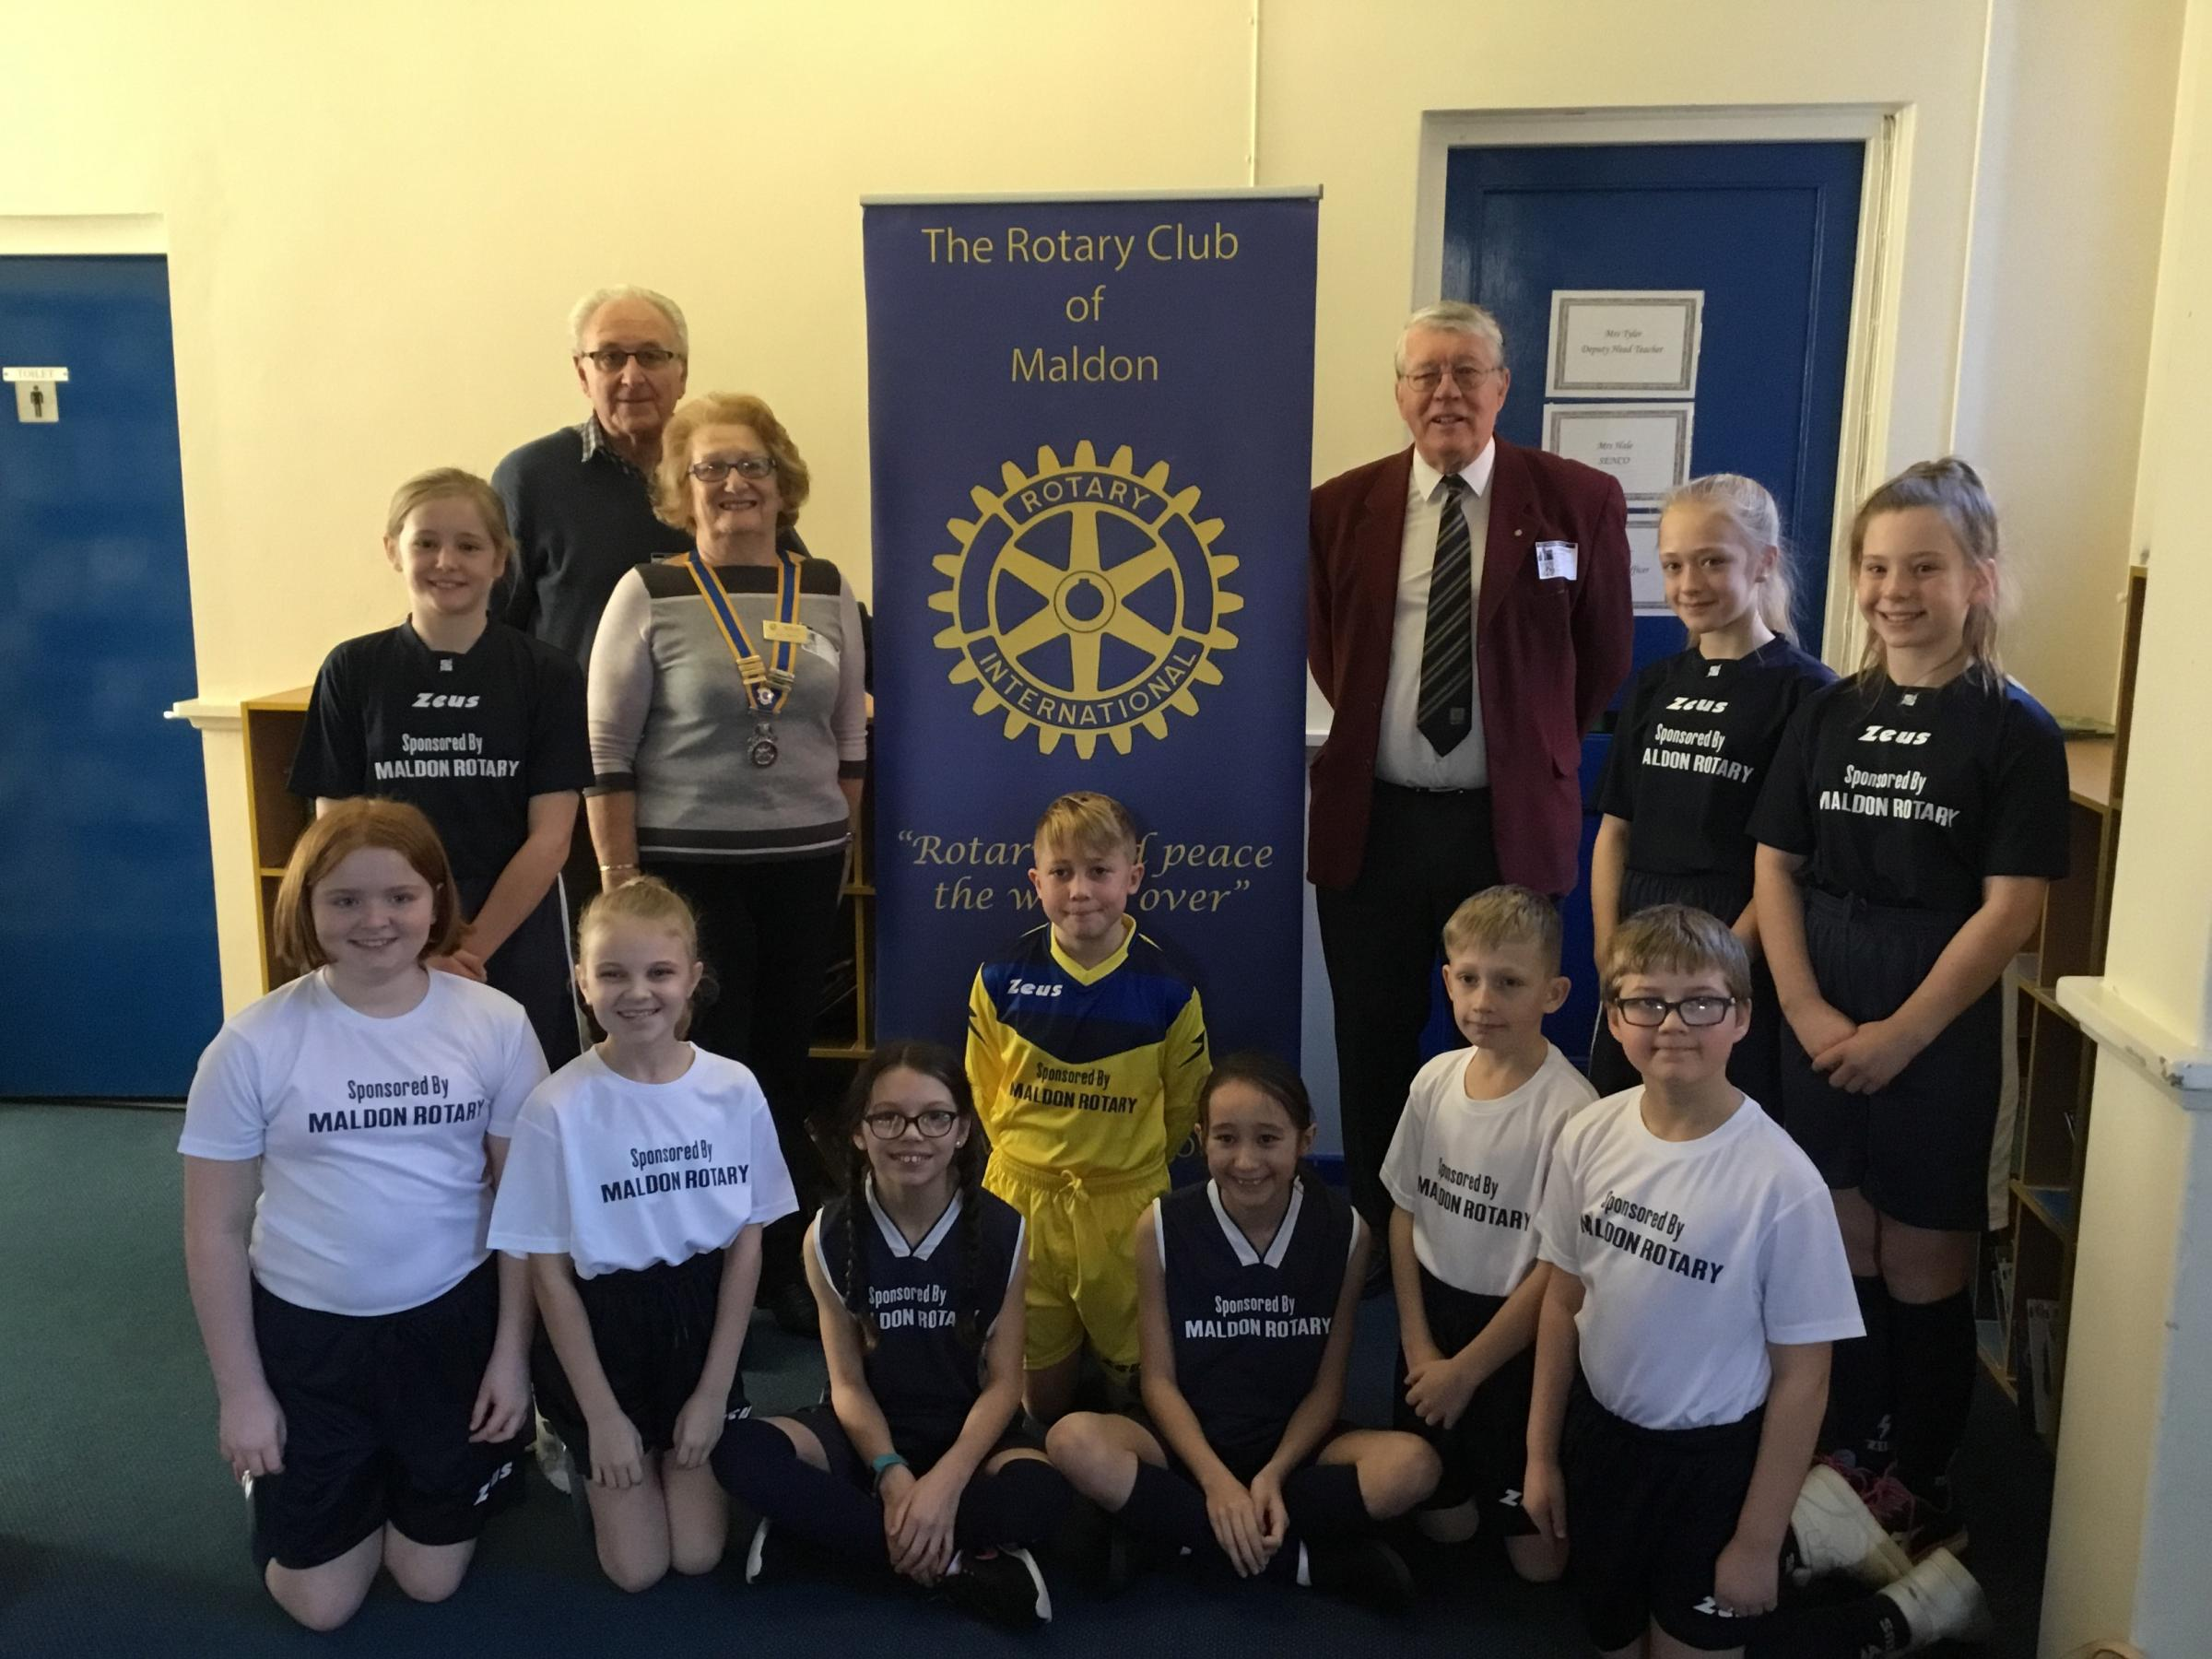 BEST KIT: Maldon Primary pupils in their new kit with Maldon Rotary members